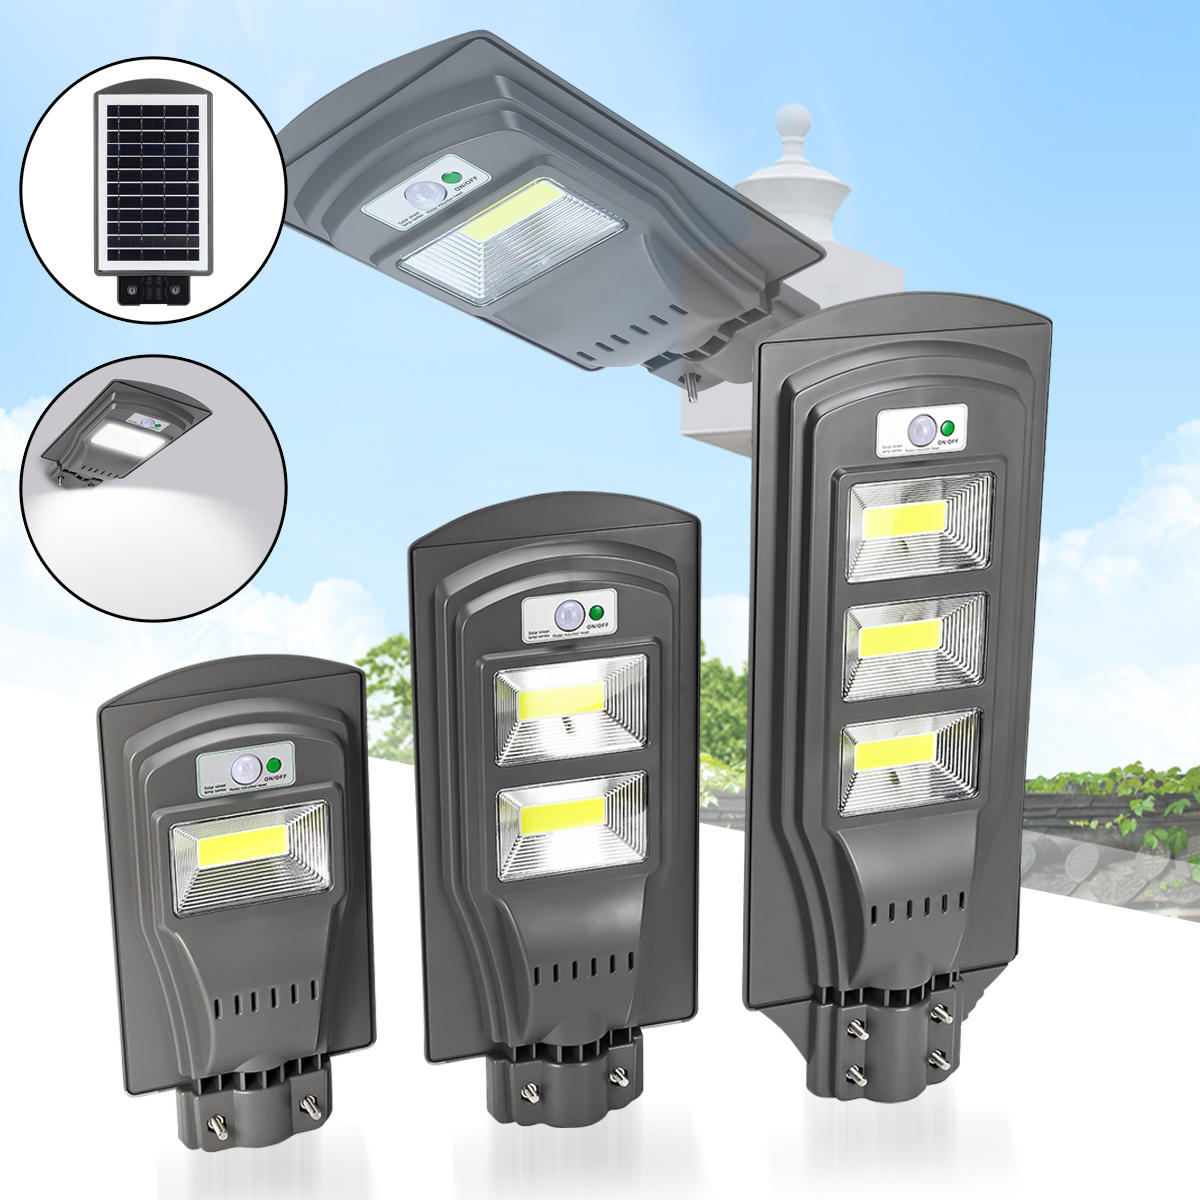 Lampe 40w 20w 40w 60w Solar Powered Pir Motion Sensor Street Lamp Outdoor Garden Yard Light